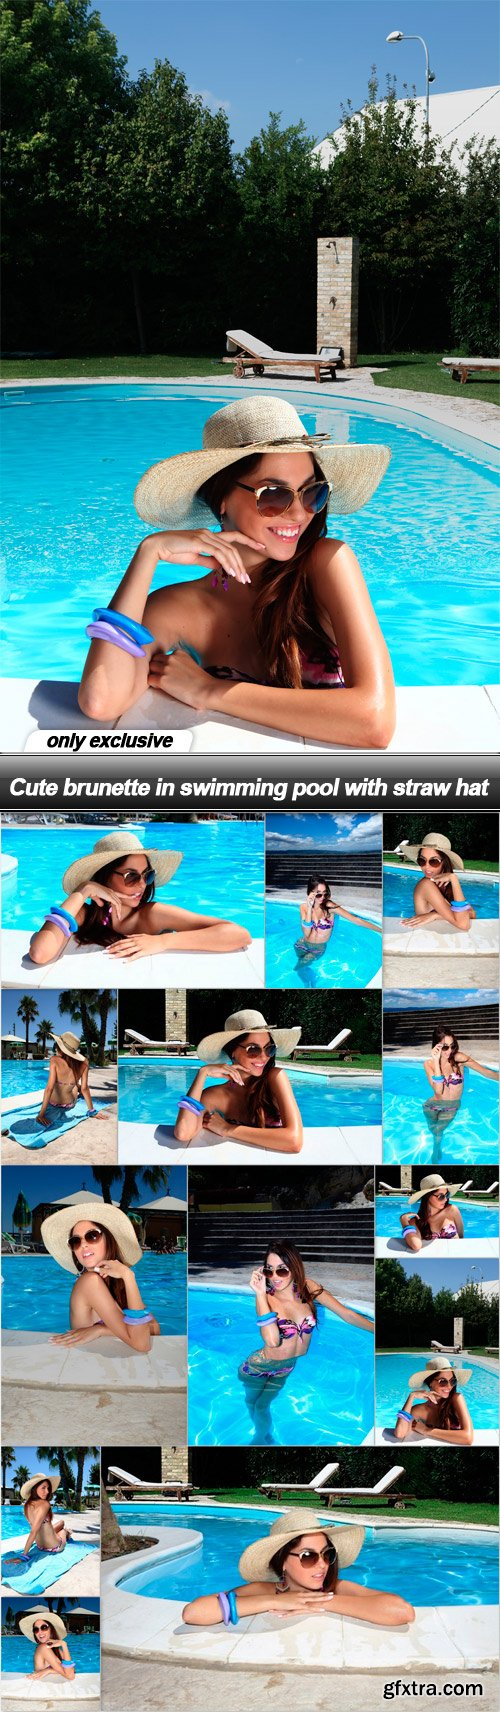 Cute brunette in swimming pool with straw hat - 13 UHQ JPEG